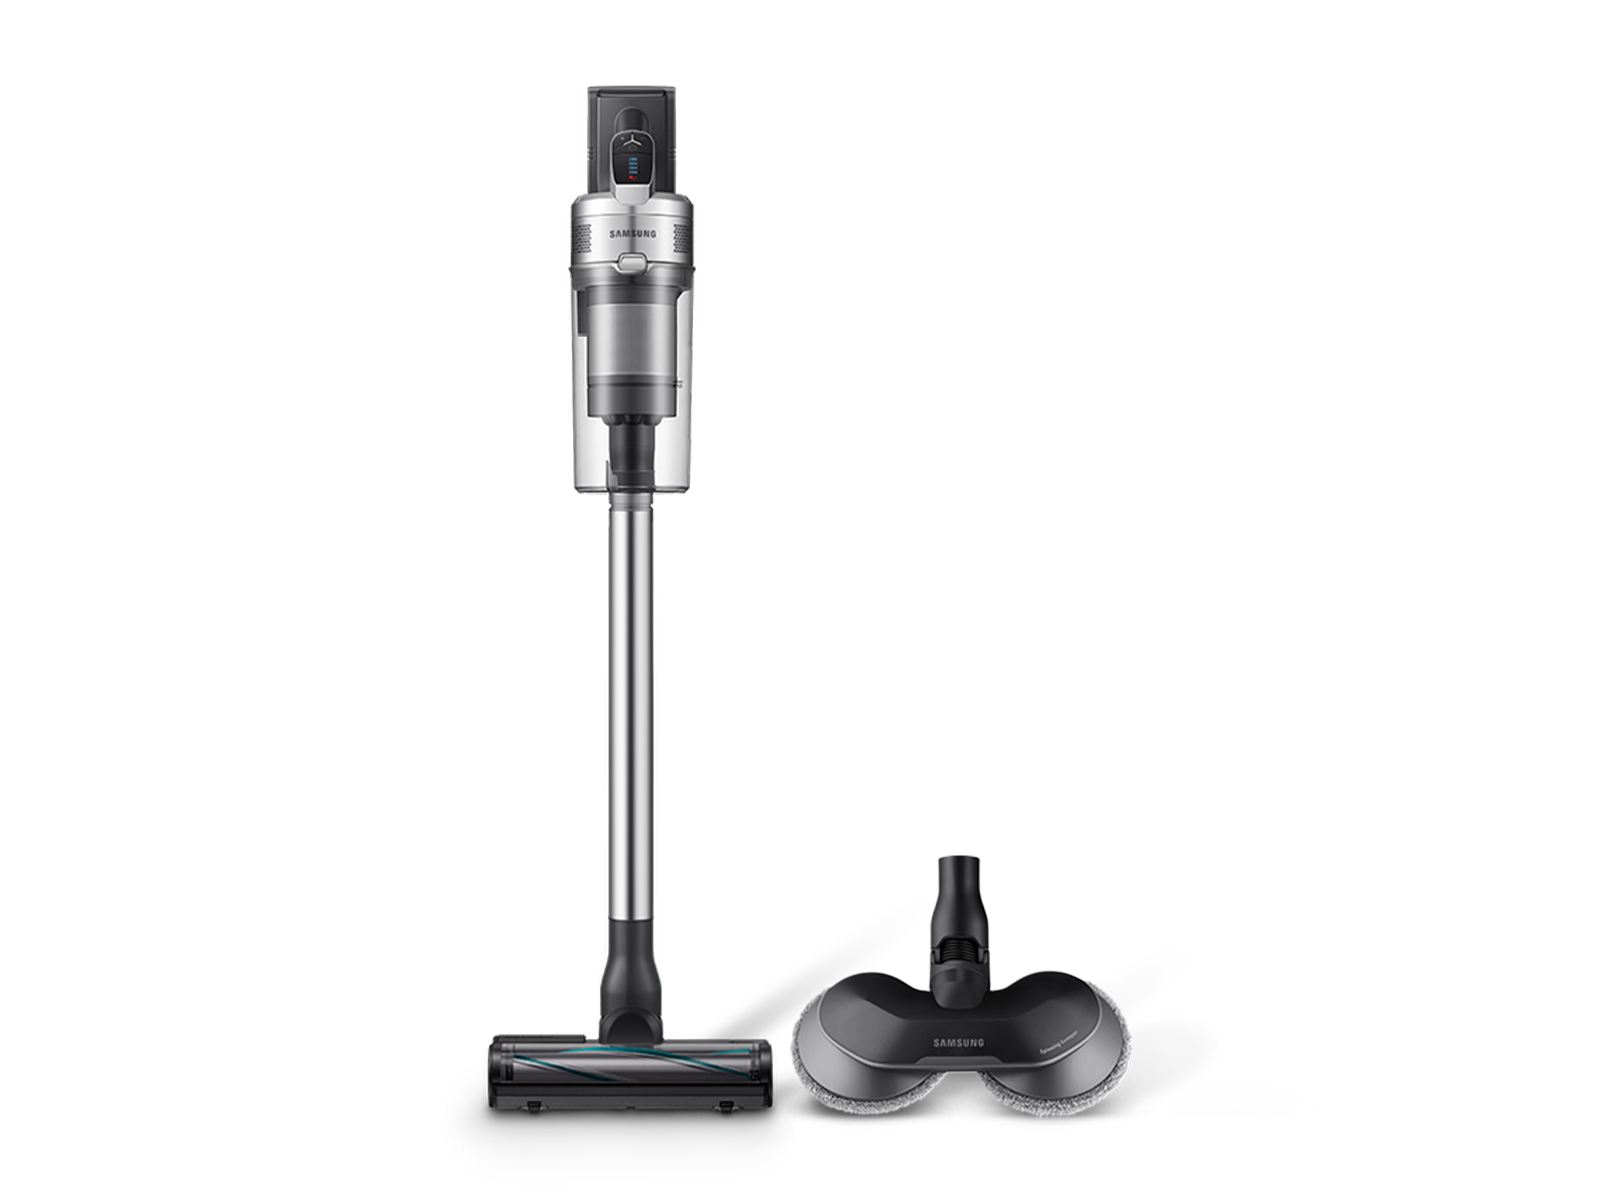 Jet 90 with sweeper $376.34 at Samsung